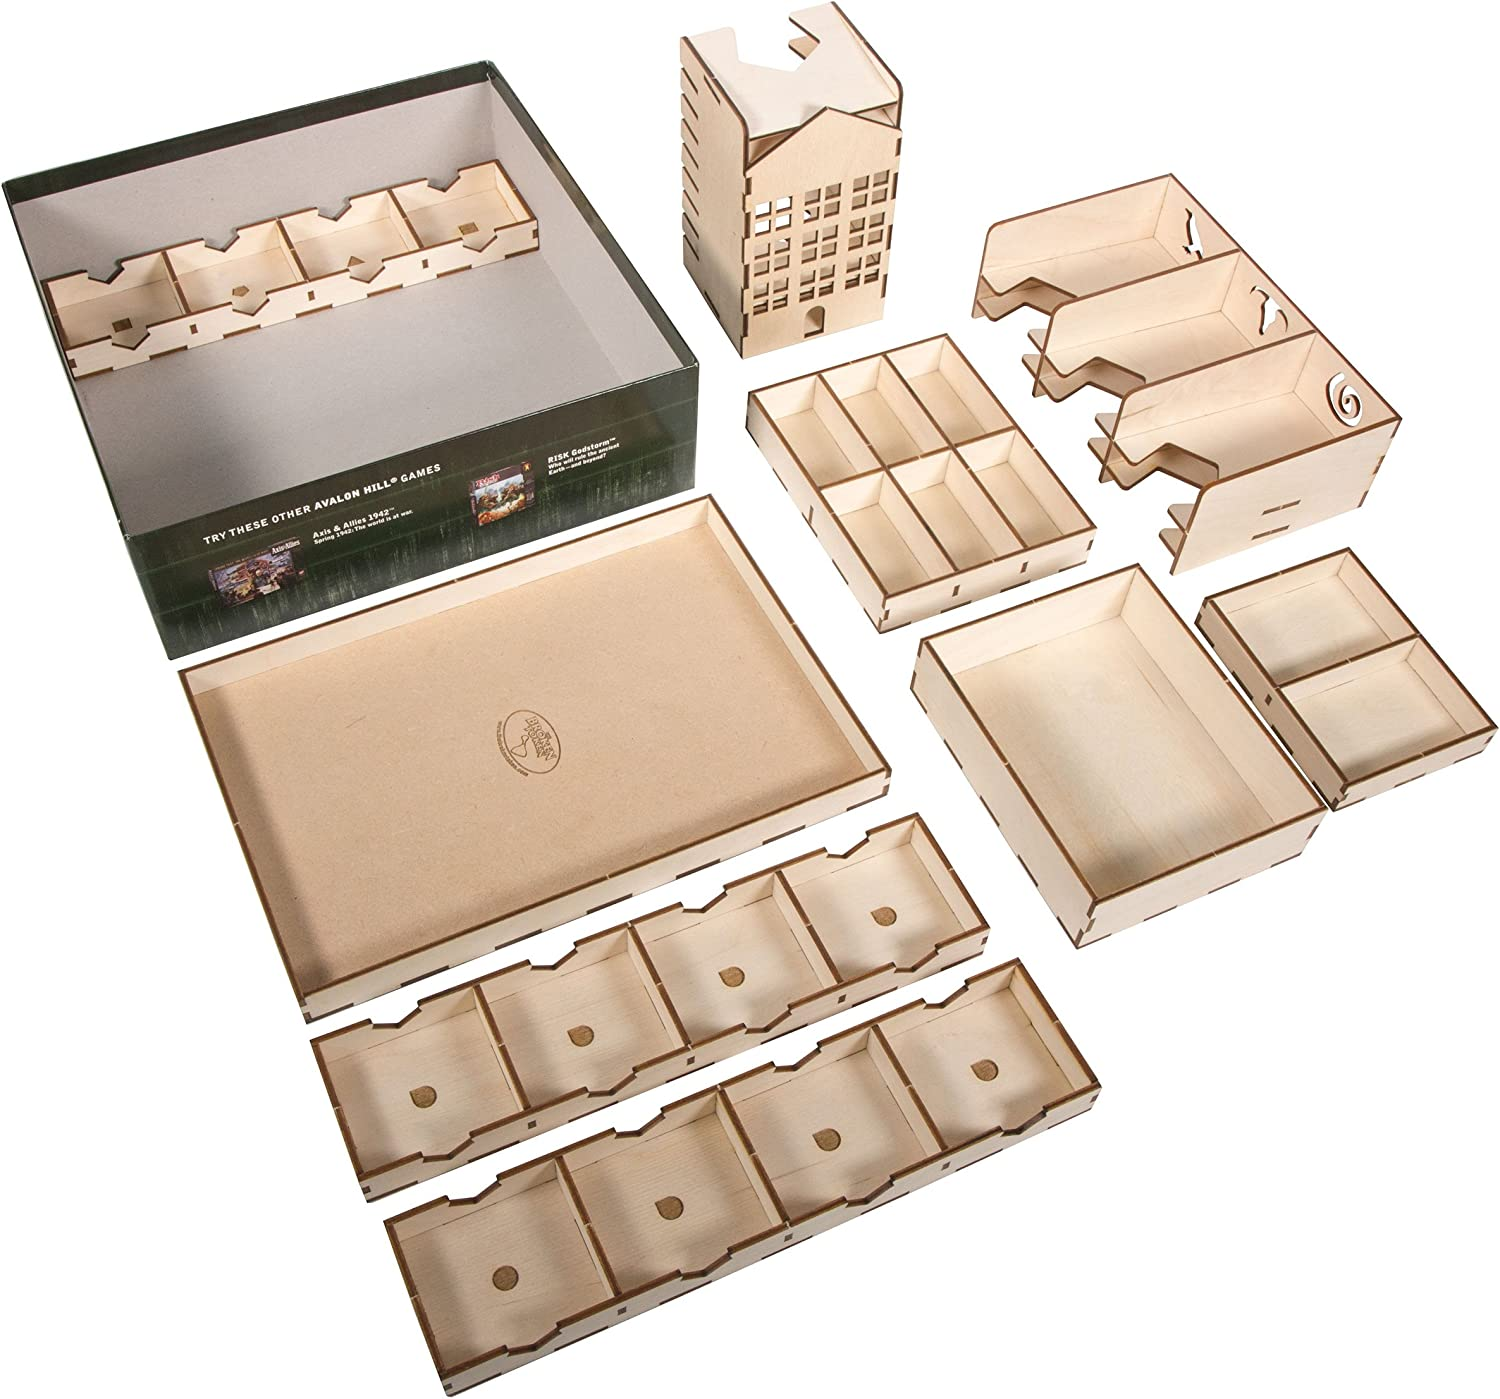 Amazon Com The Broken Token Box Organizer For Betrayal At House On The Hill Toys Games